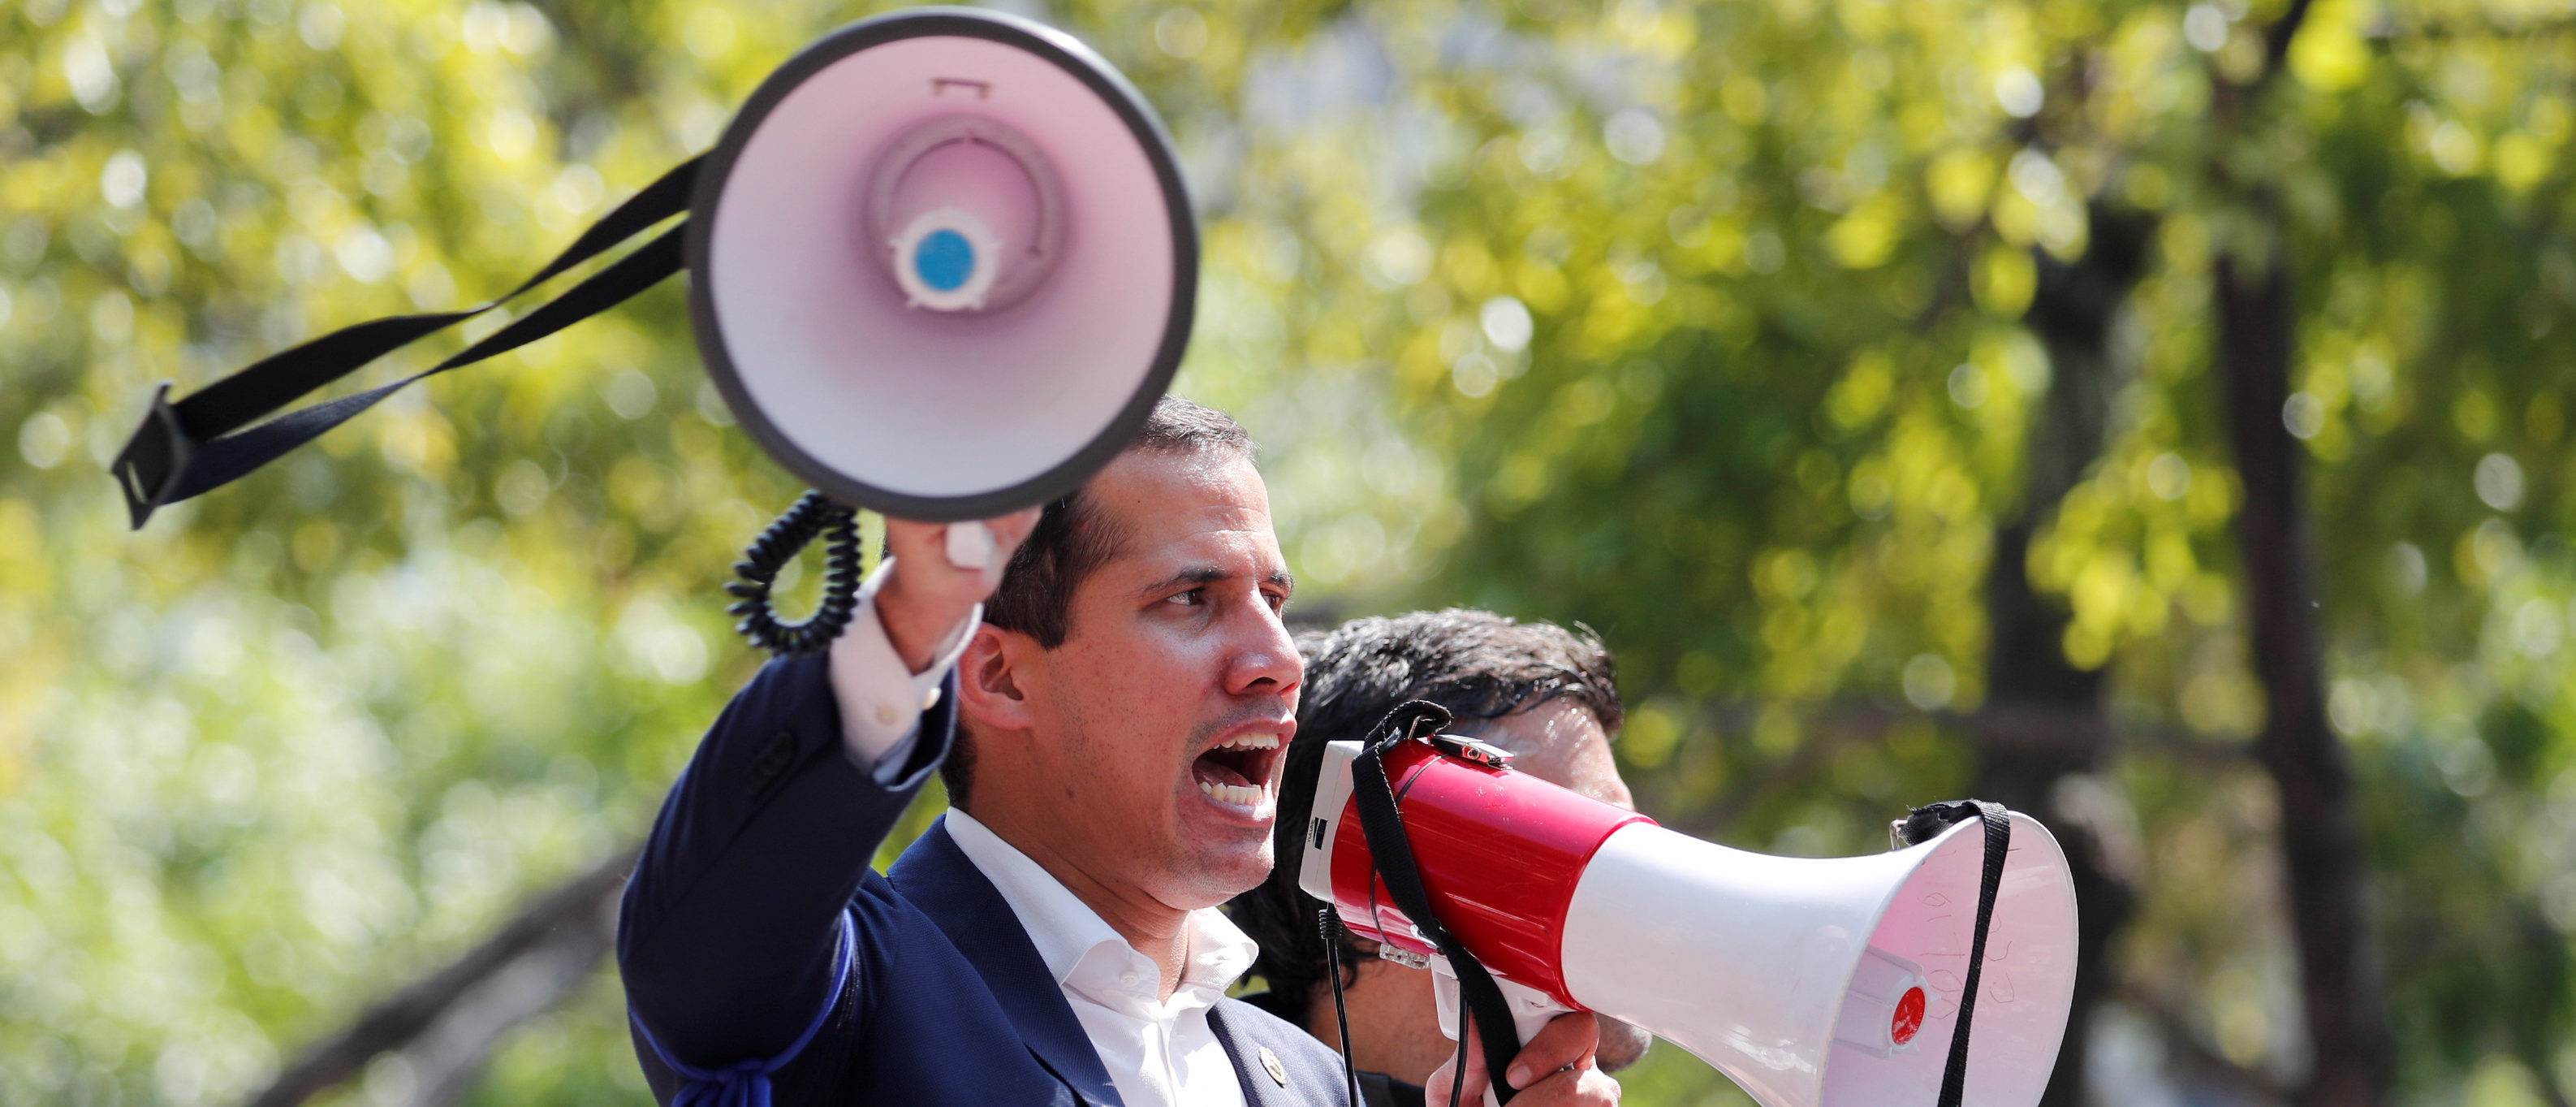 Venezuelan opposition leader Juan Guaido, who many nations have recognised as the country's rightful interim ruler, talks to supporters in Caracas, Venezuela April 30, 2019. REUTERS/Carlos Garcia Rawlins